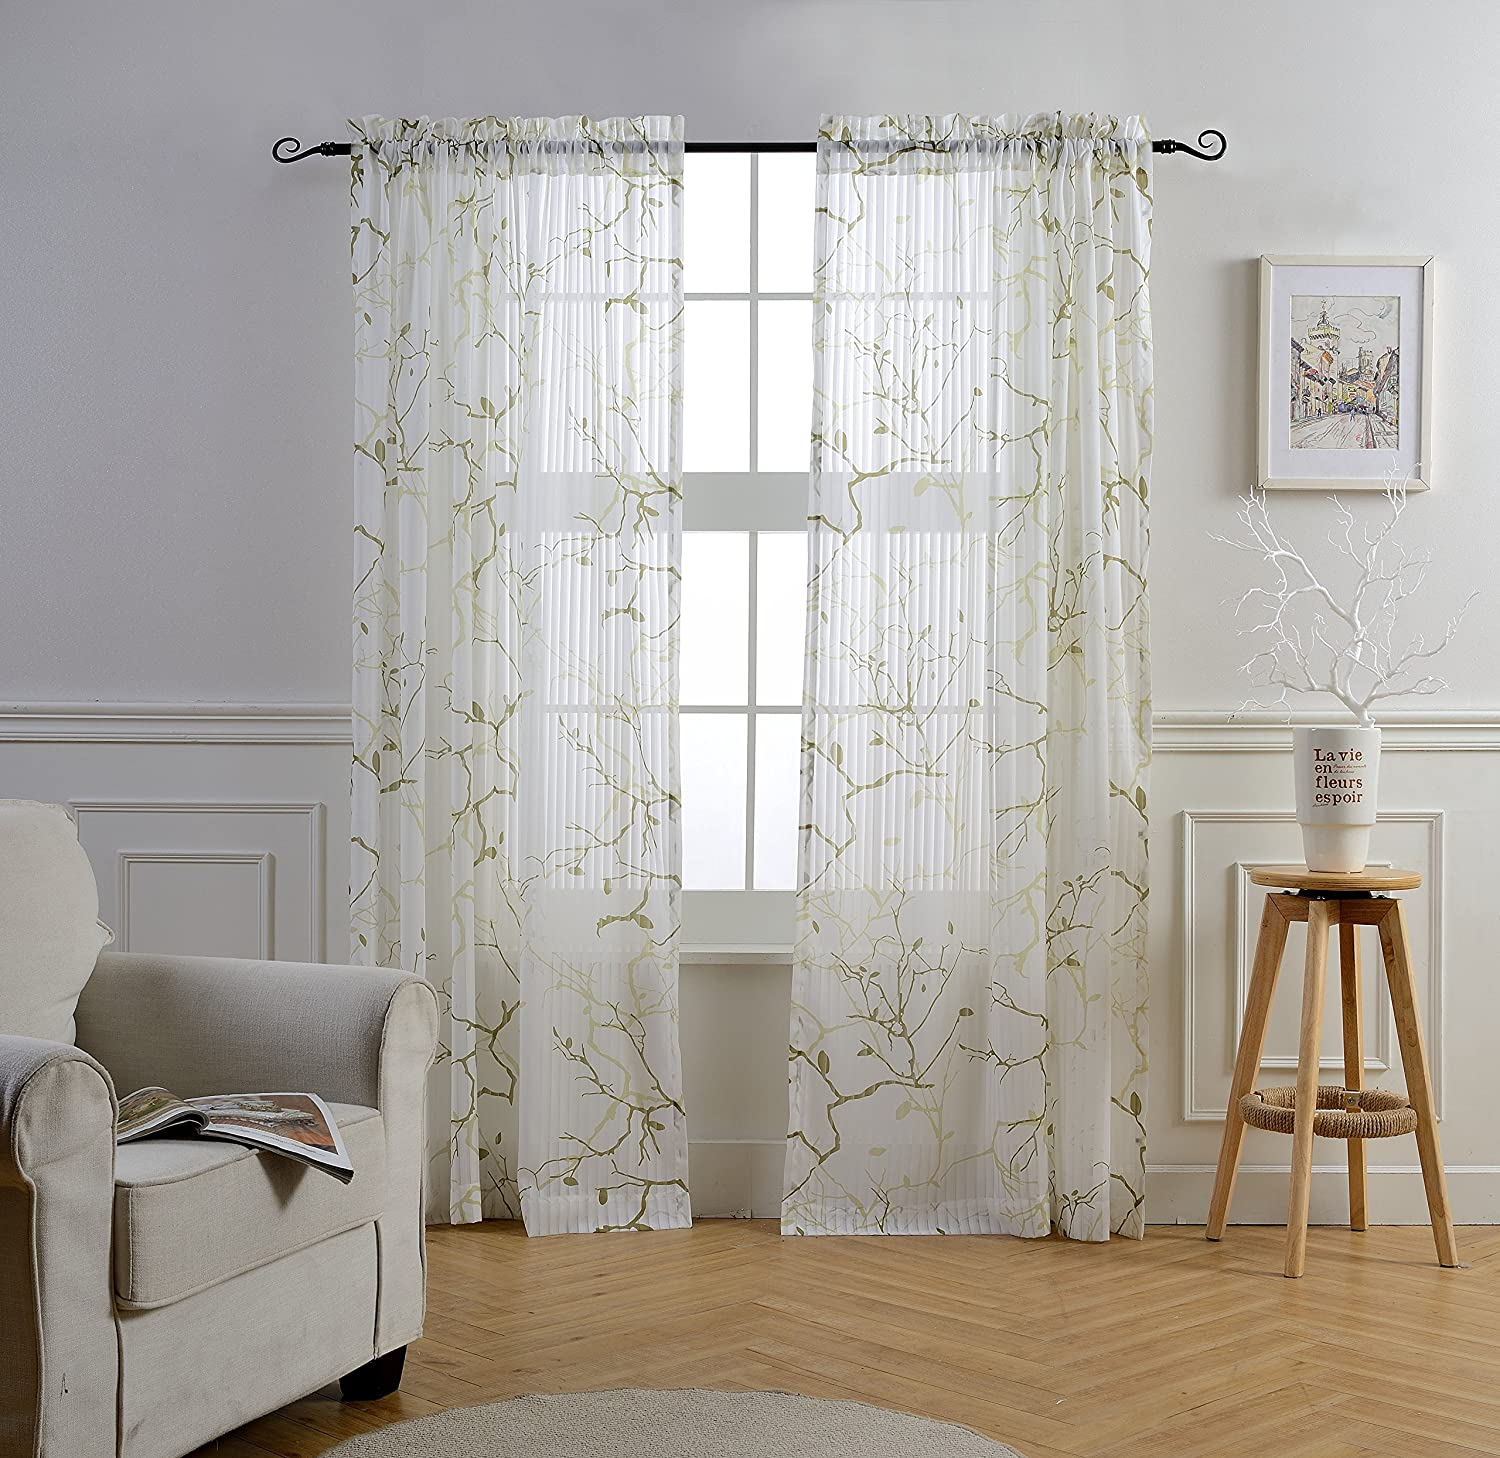 Striped white sheer panel curtains